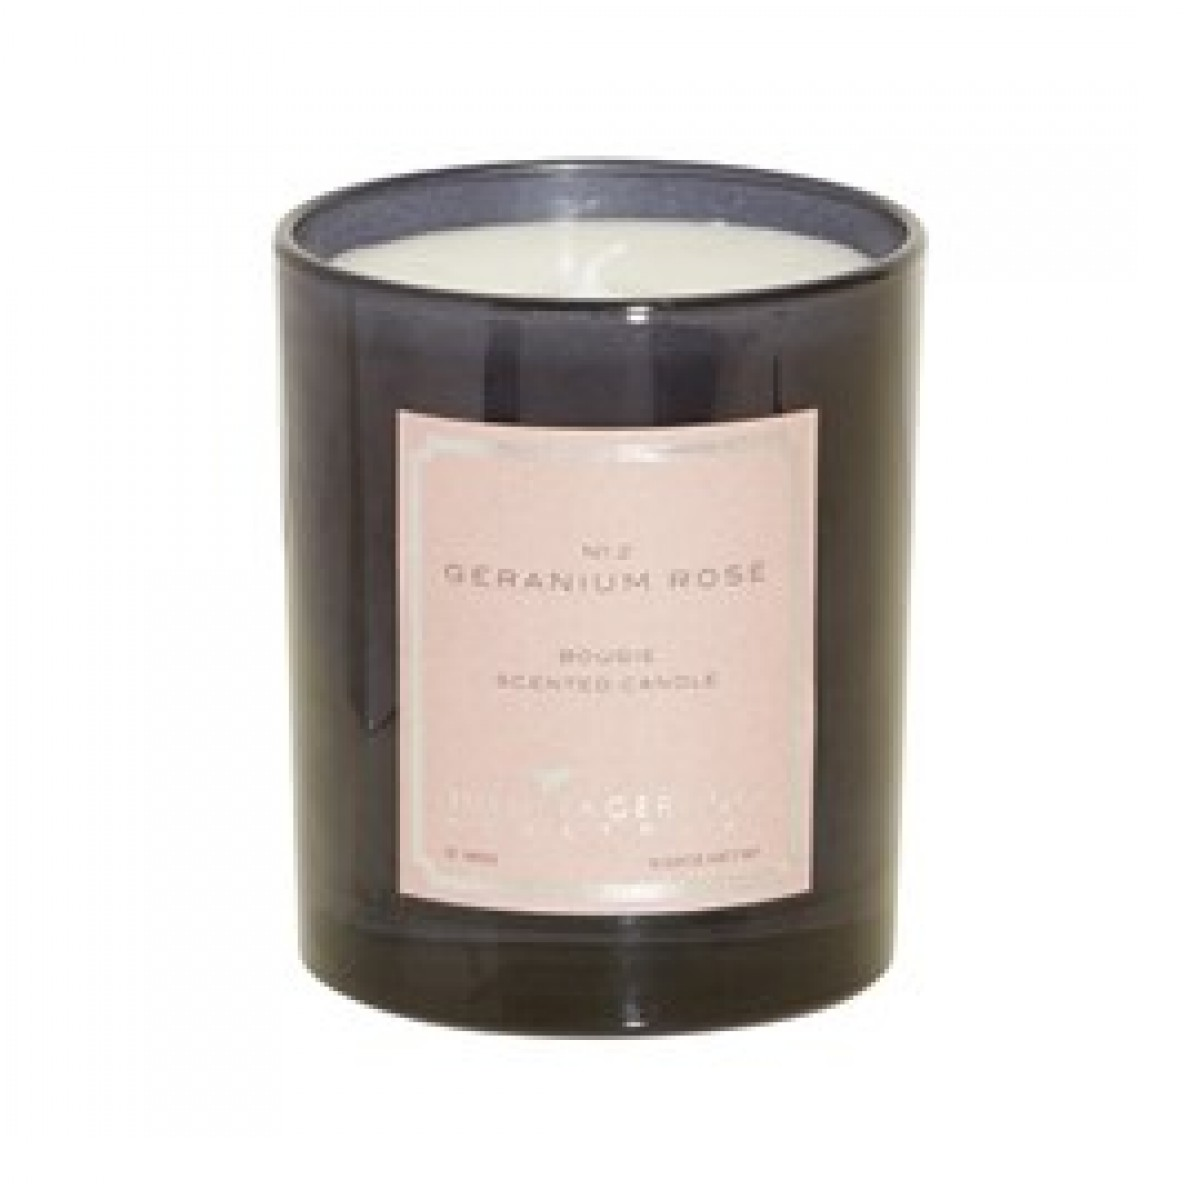 Julie Fagerholt Heartmade No2 Geranium Rose Candles-30